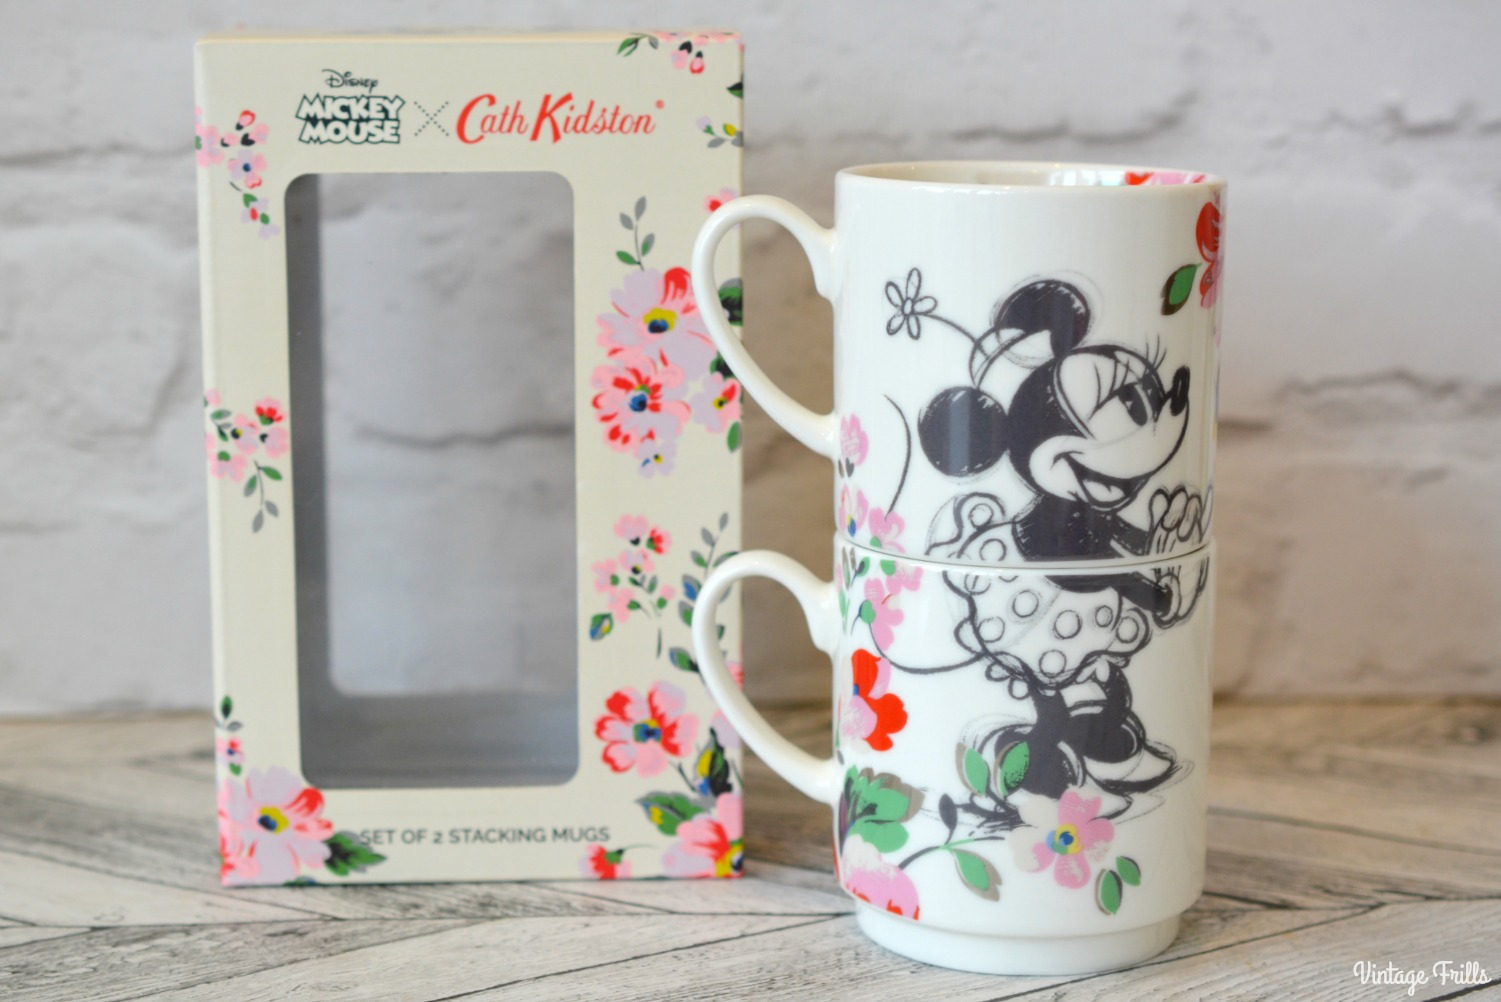 Disney Cath Kidston Minnie and Mickey Stackable Mugs